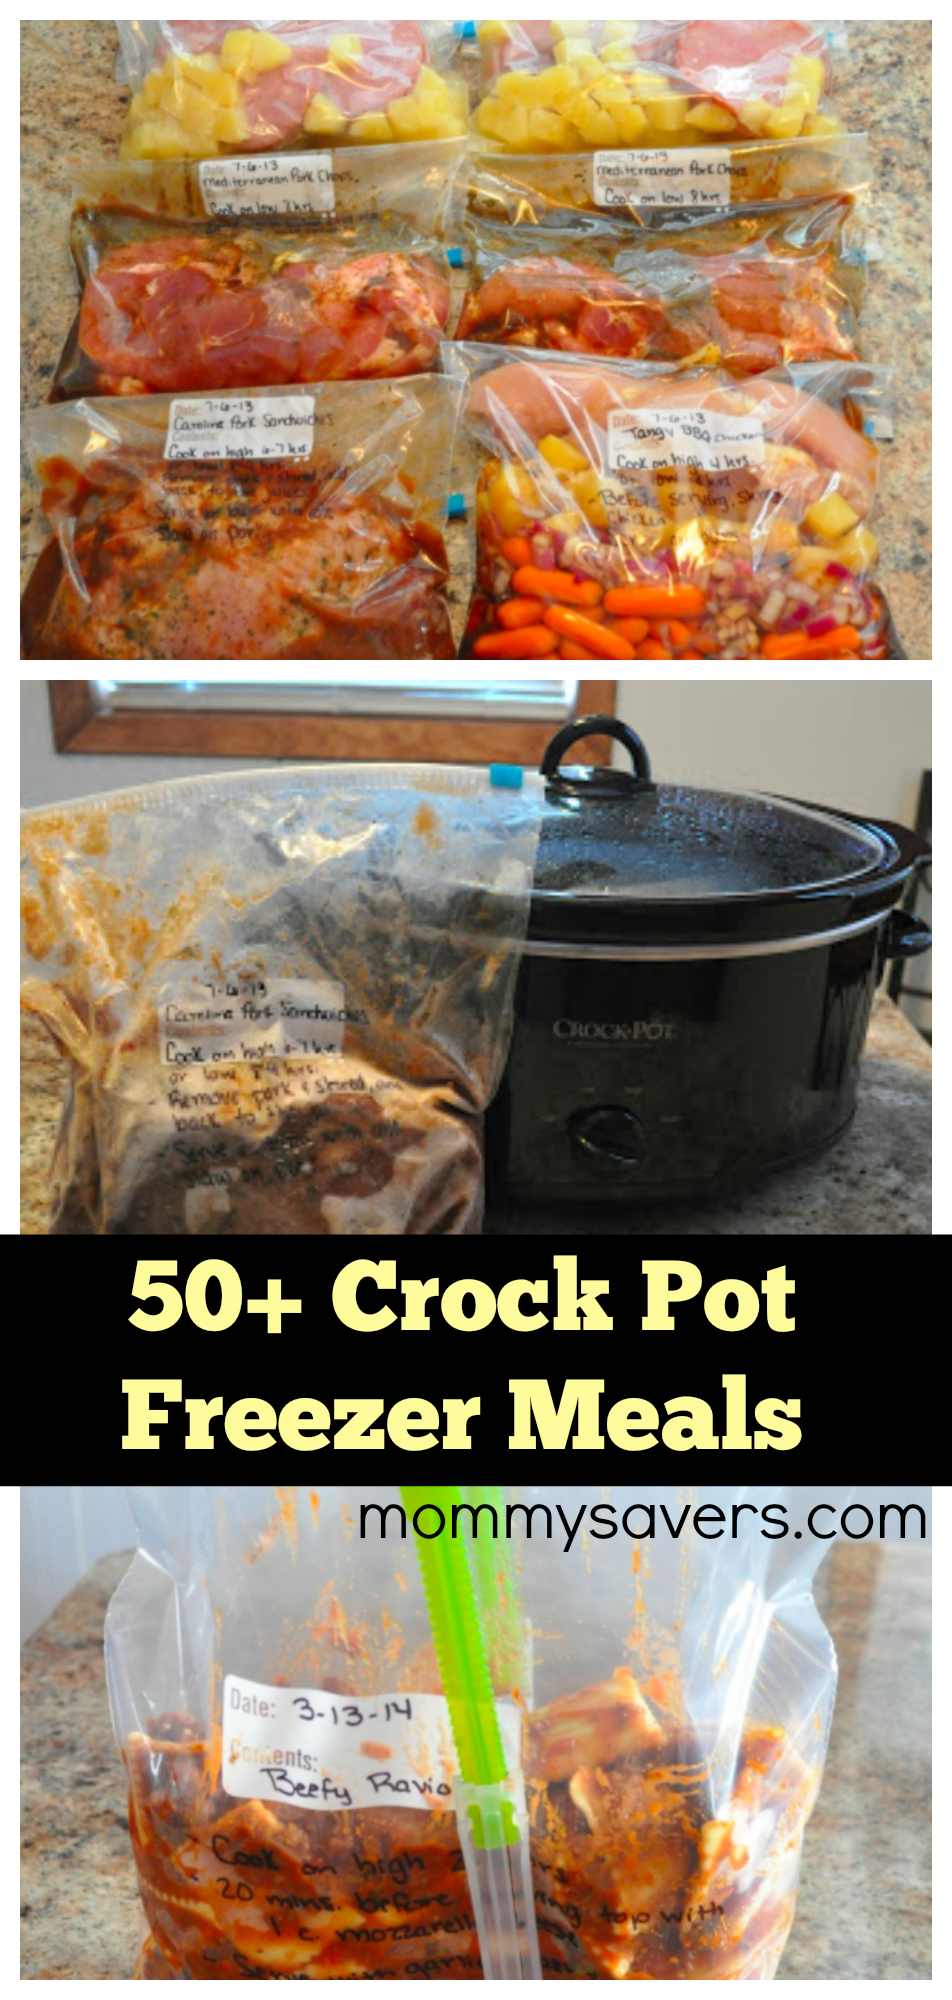 50+ Crock Pot Freezer Meals